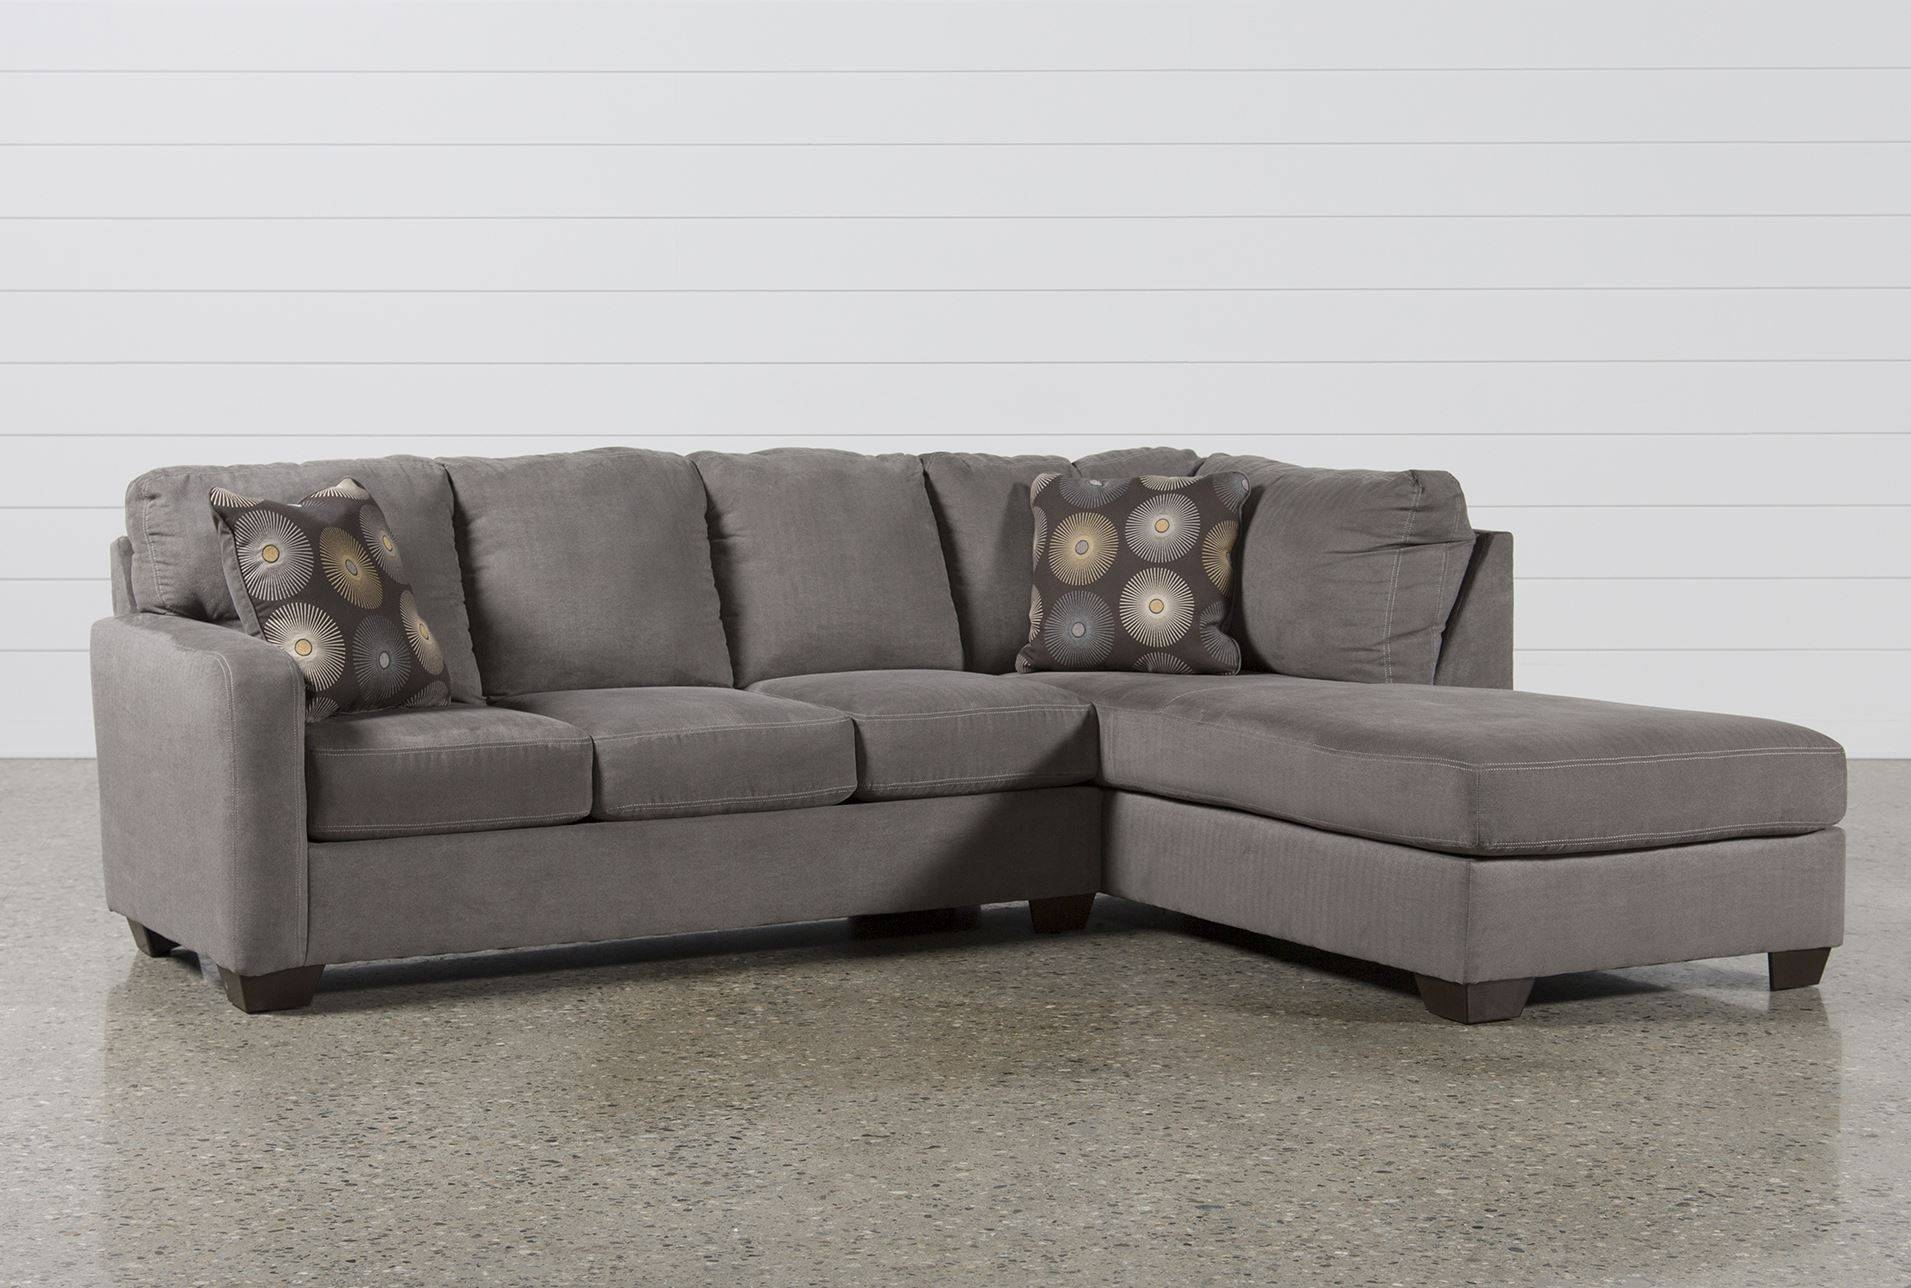 Long Sectional Sofa Toronto | Tehranmix Decoration pertaining to Long Sectional Sofa With Chaise (Image 15 of 30)